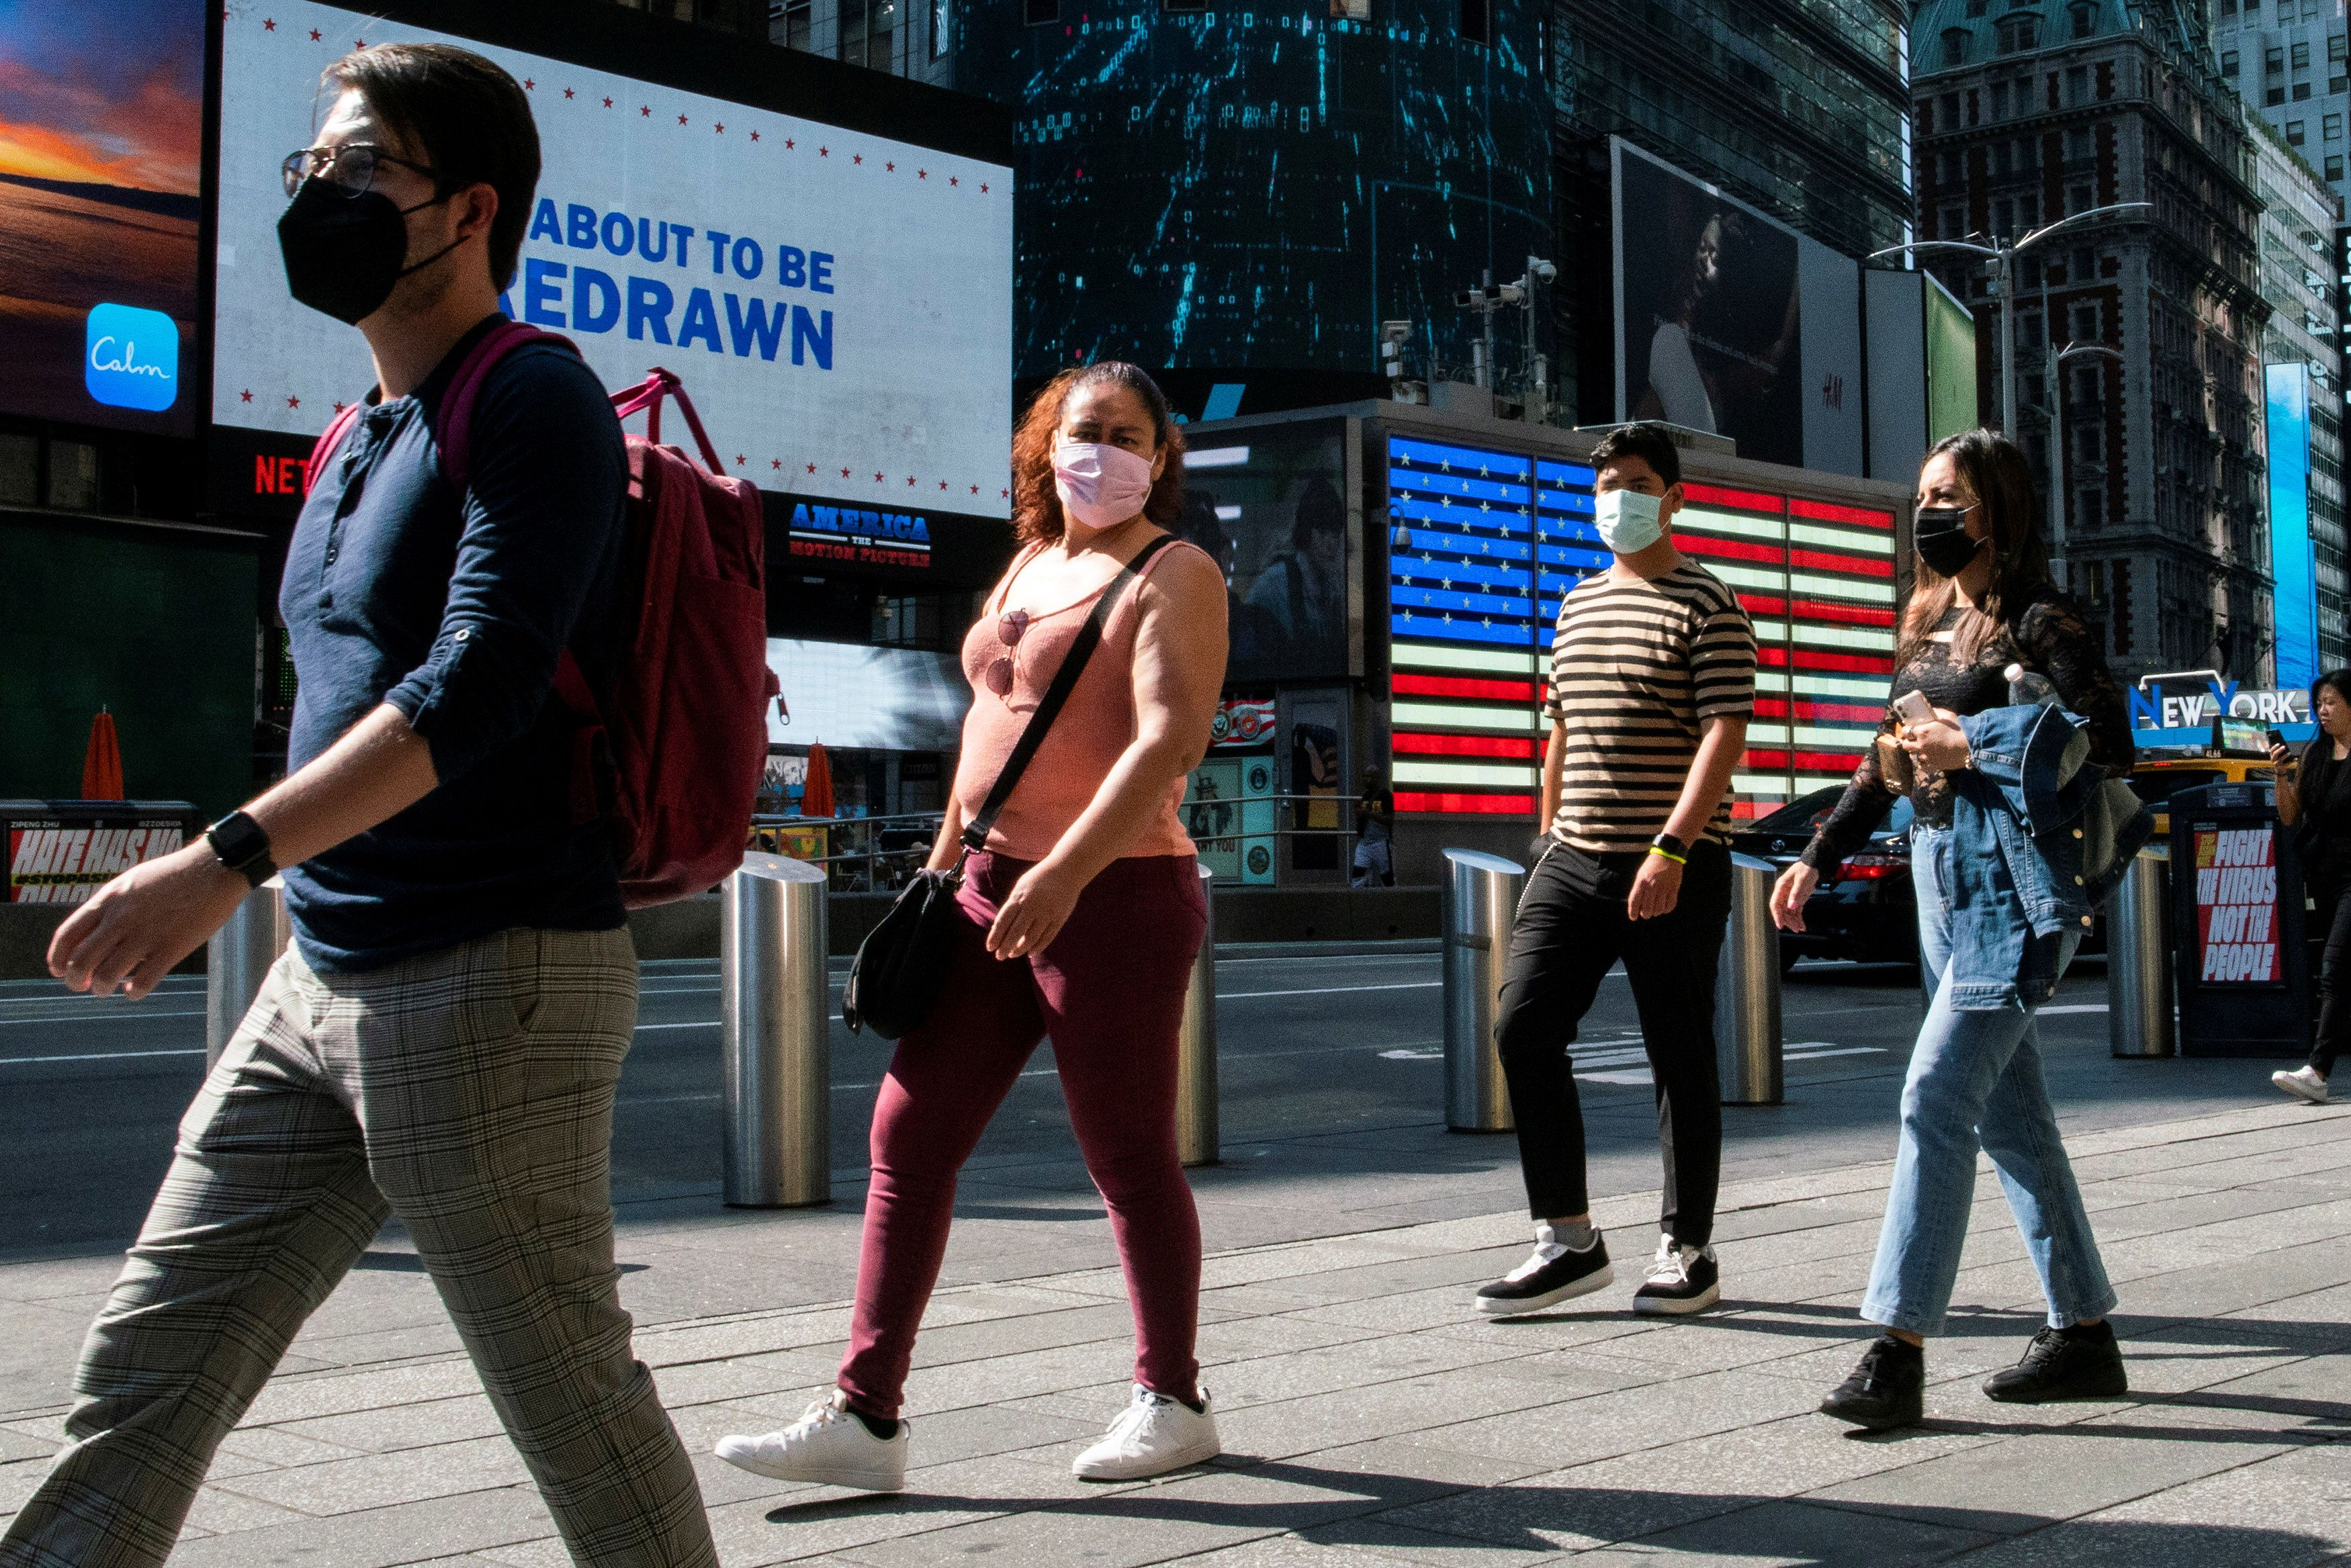 People wear masks around Times Square, as cases of the infectious coronavirus Delta variant continue to rise in New York City, New York, U.S., July 23, 2021. REUTERS/Eduardo Munoz